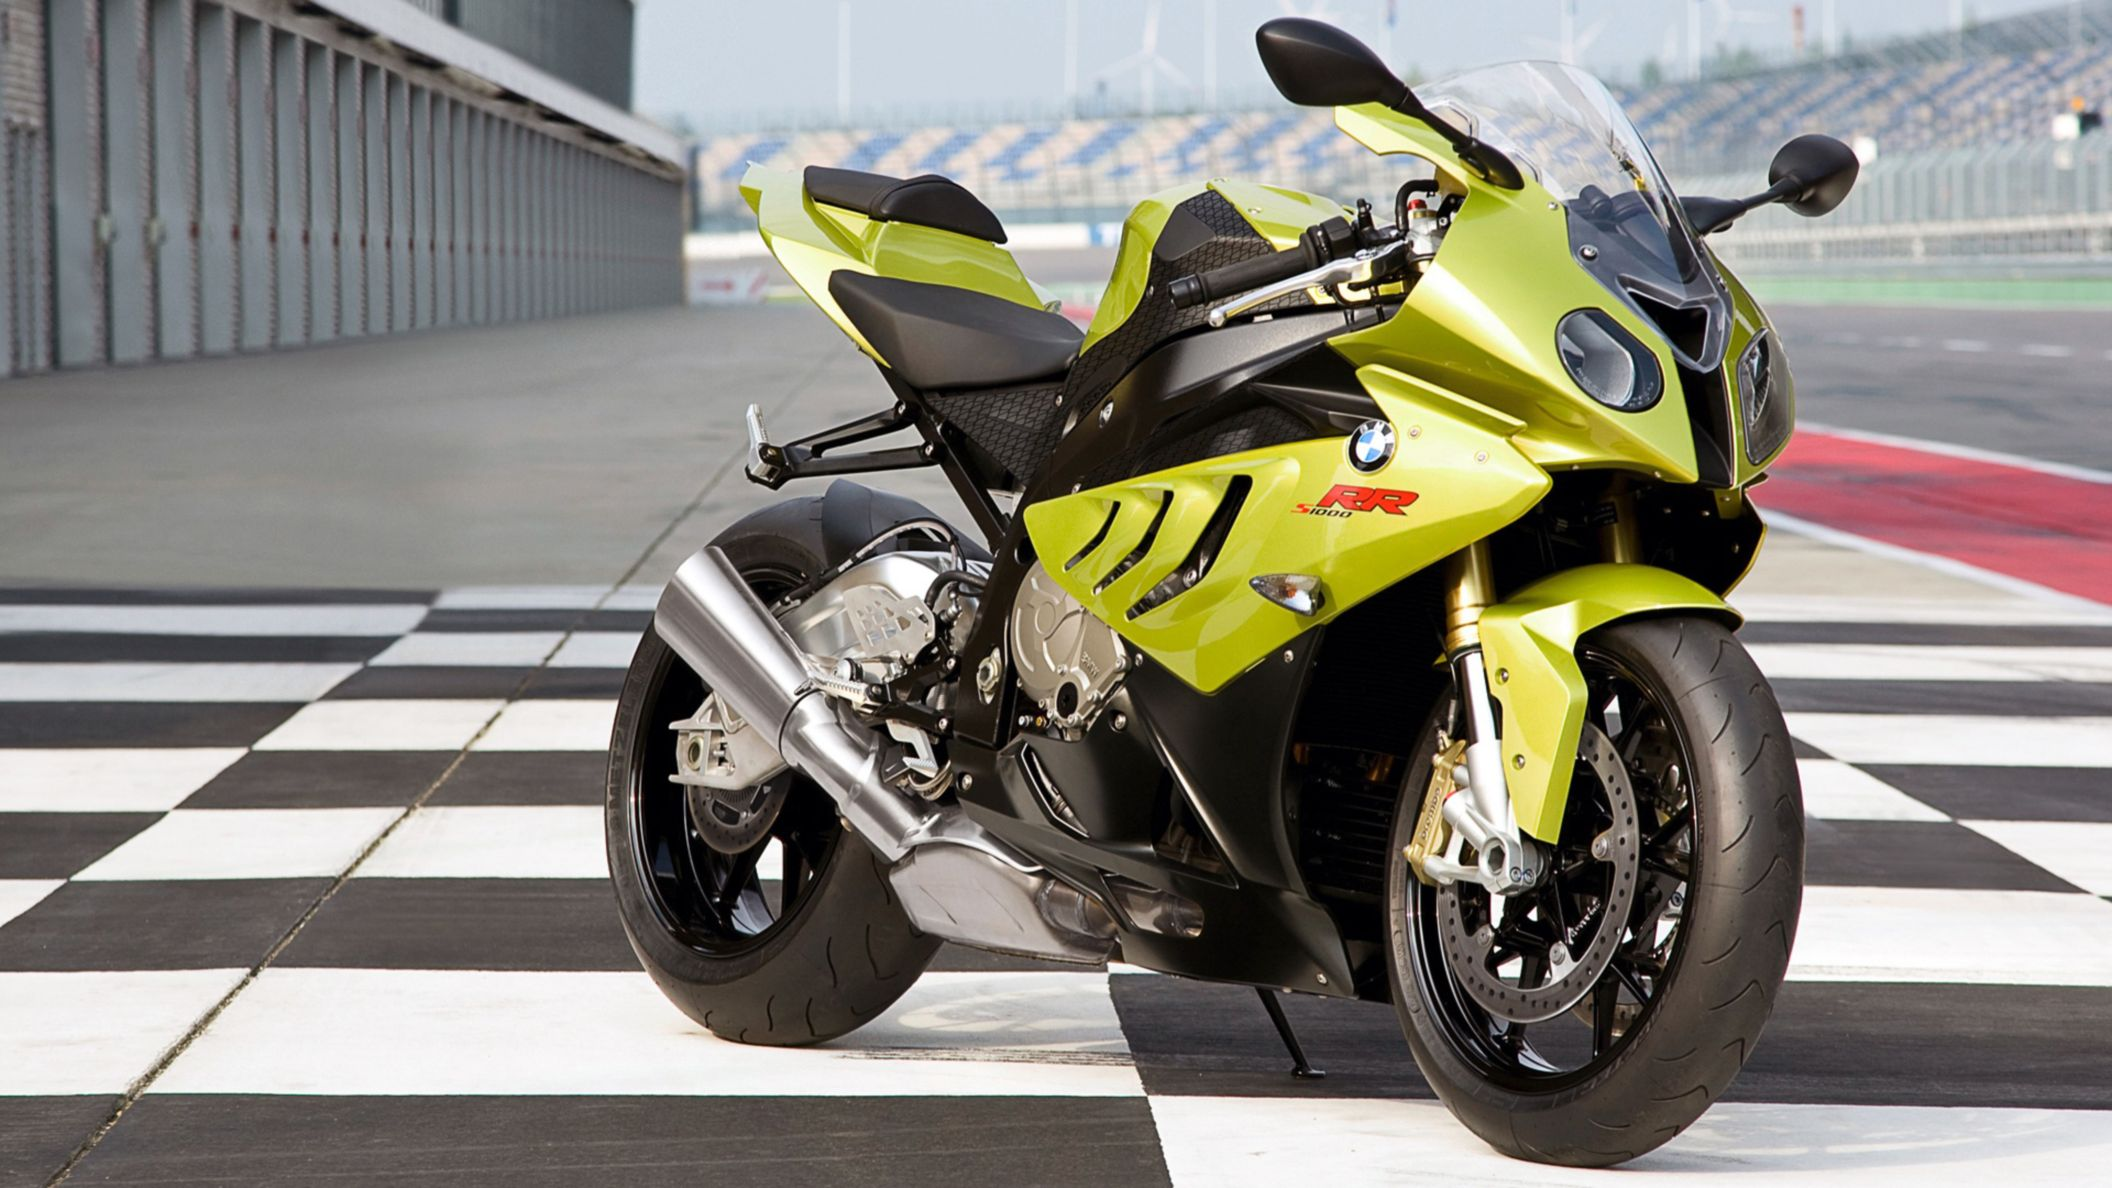 Download free HD BMW S 1000 Rr HD Wallpaper, image